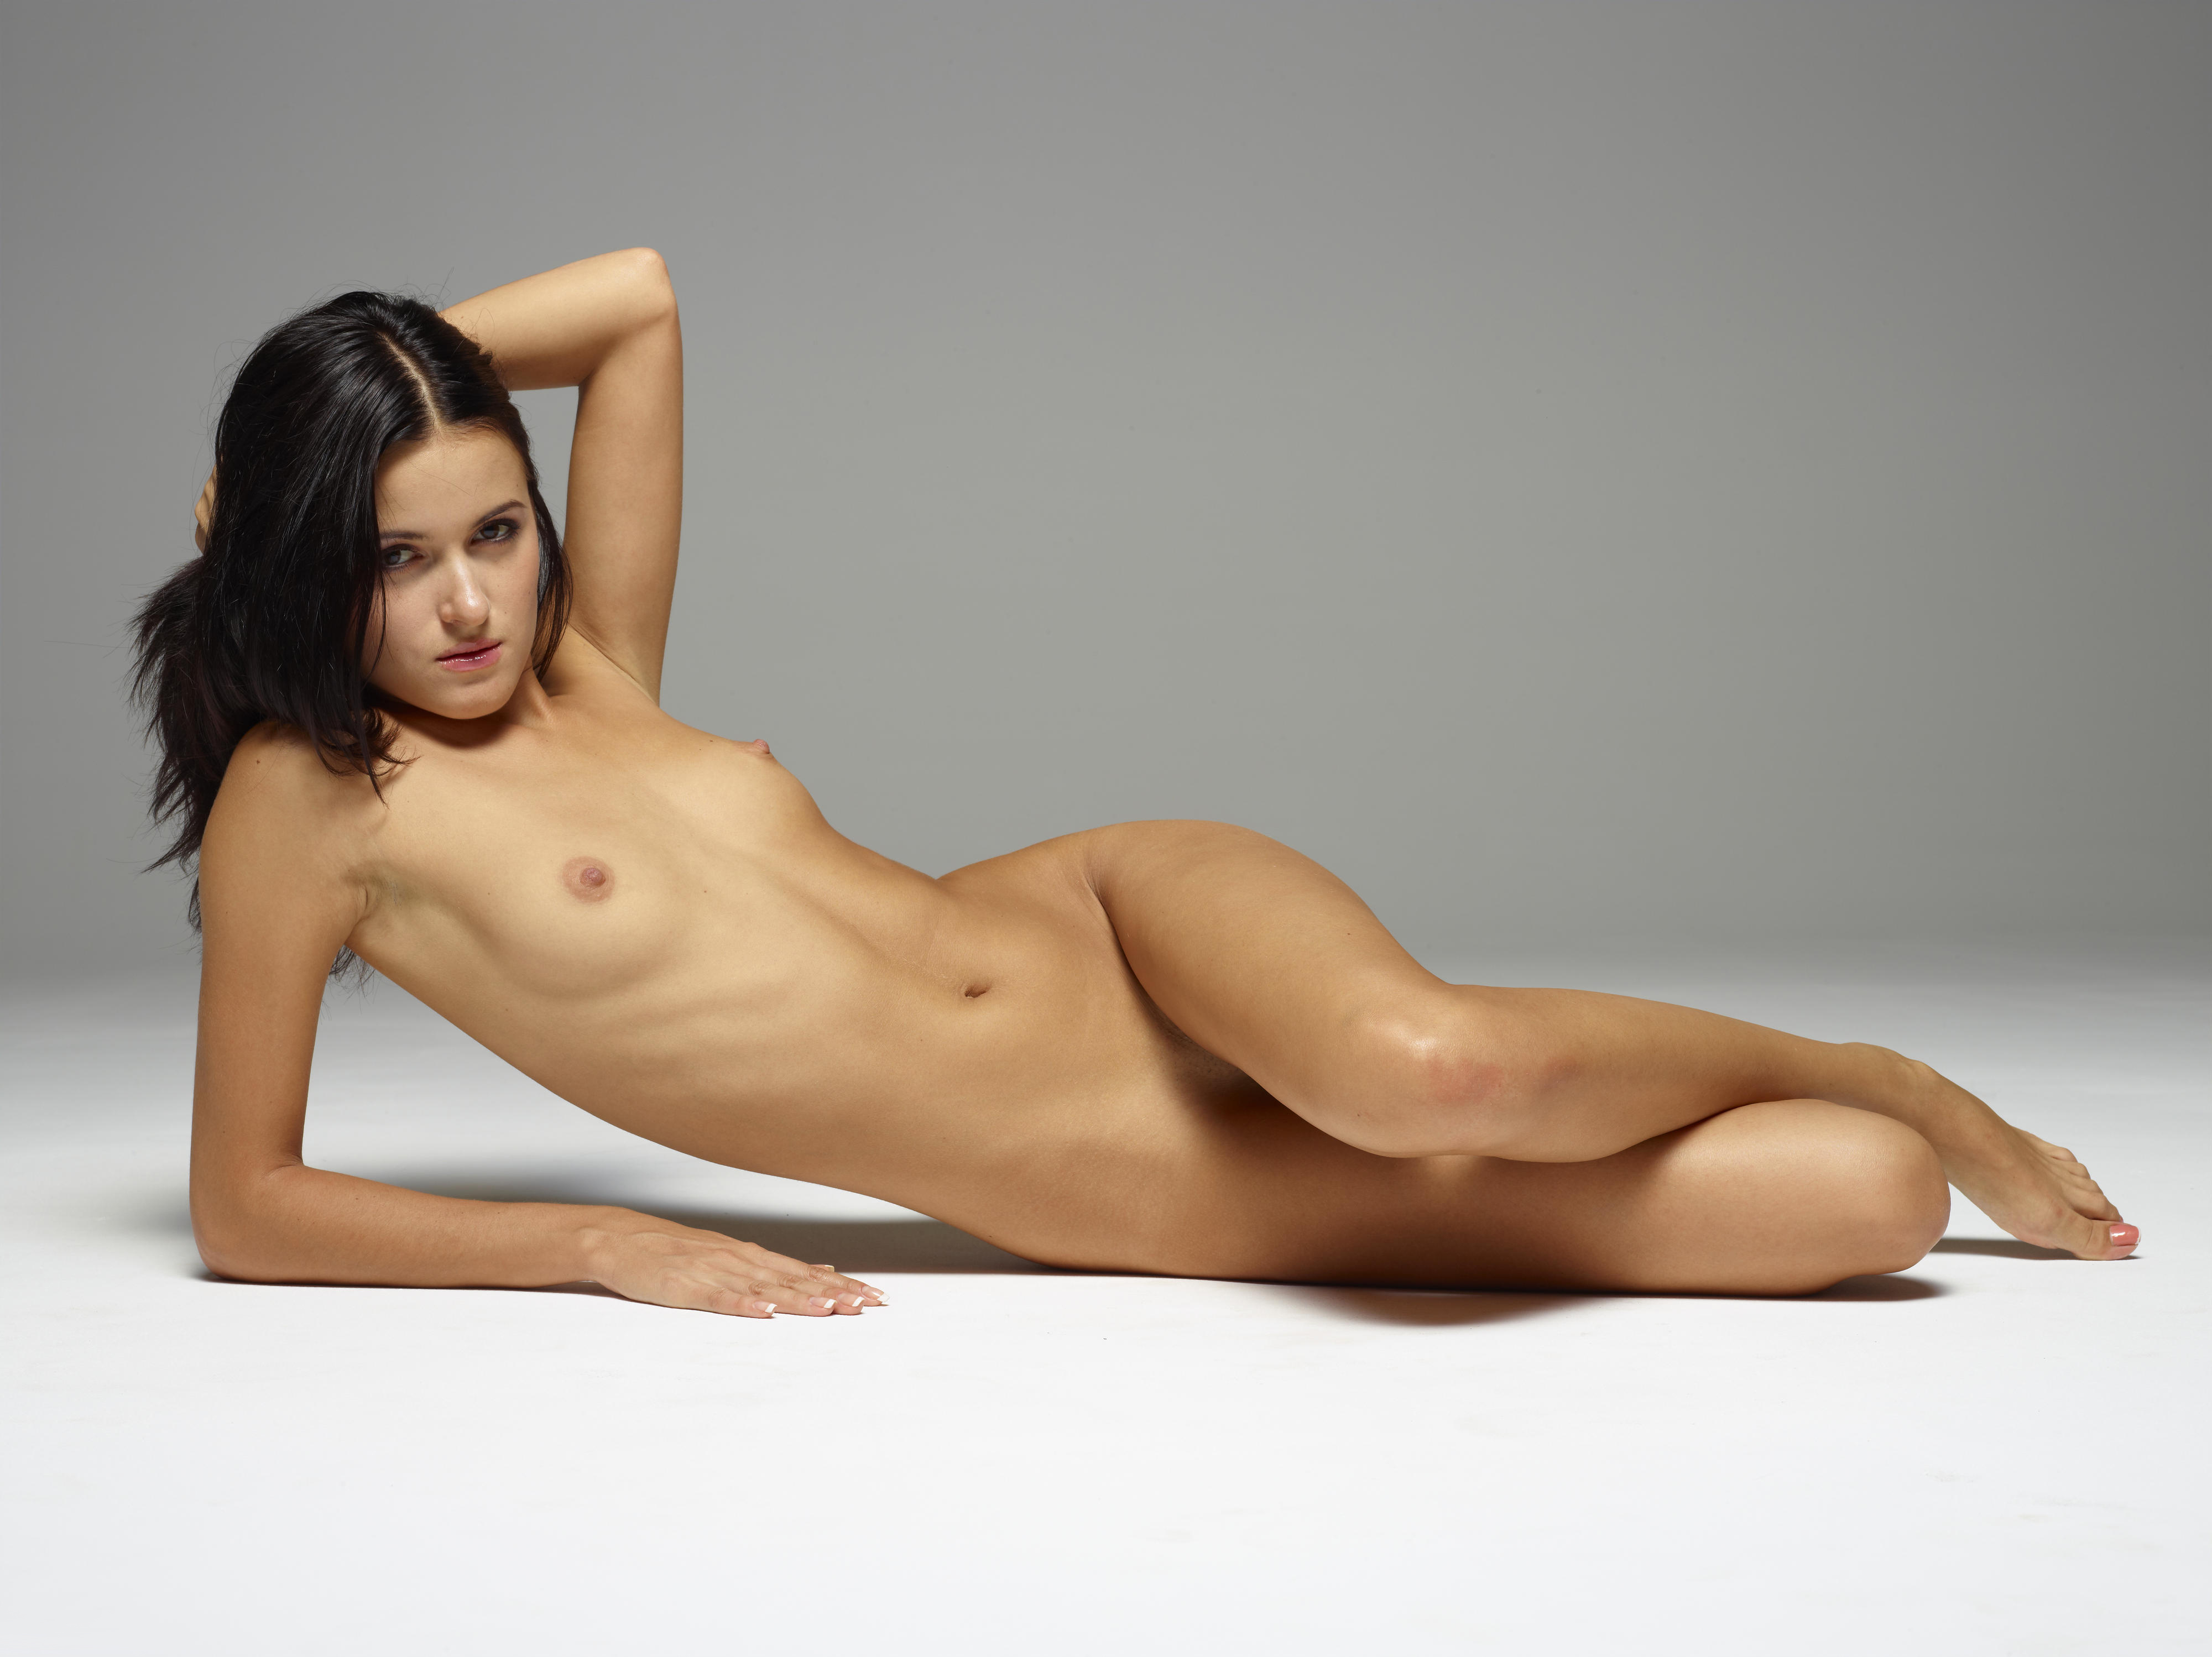 Nude babe small tits